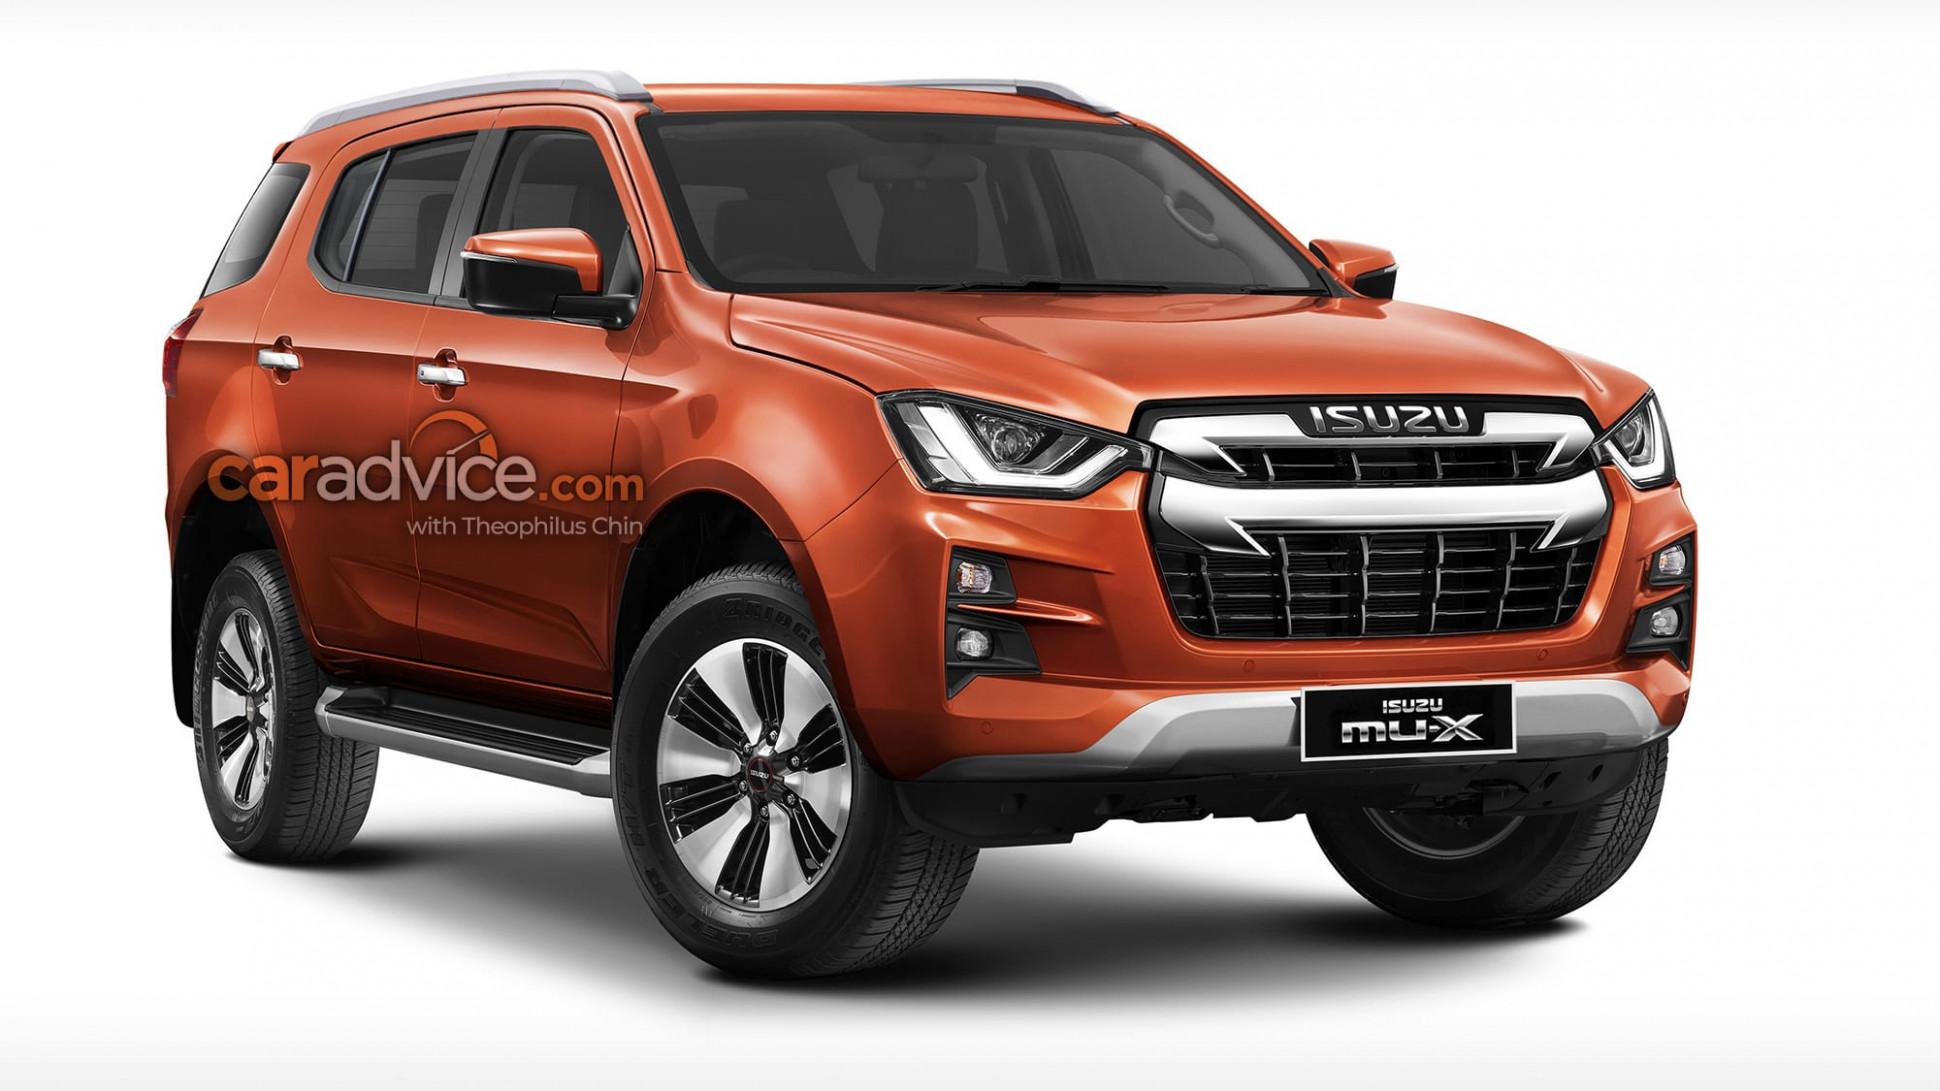 First Drive 2022 Isuzu MU-X